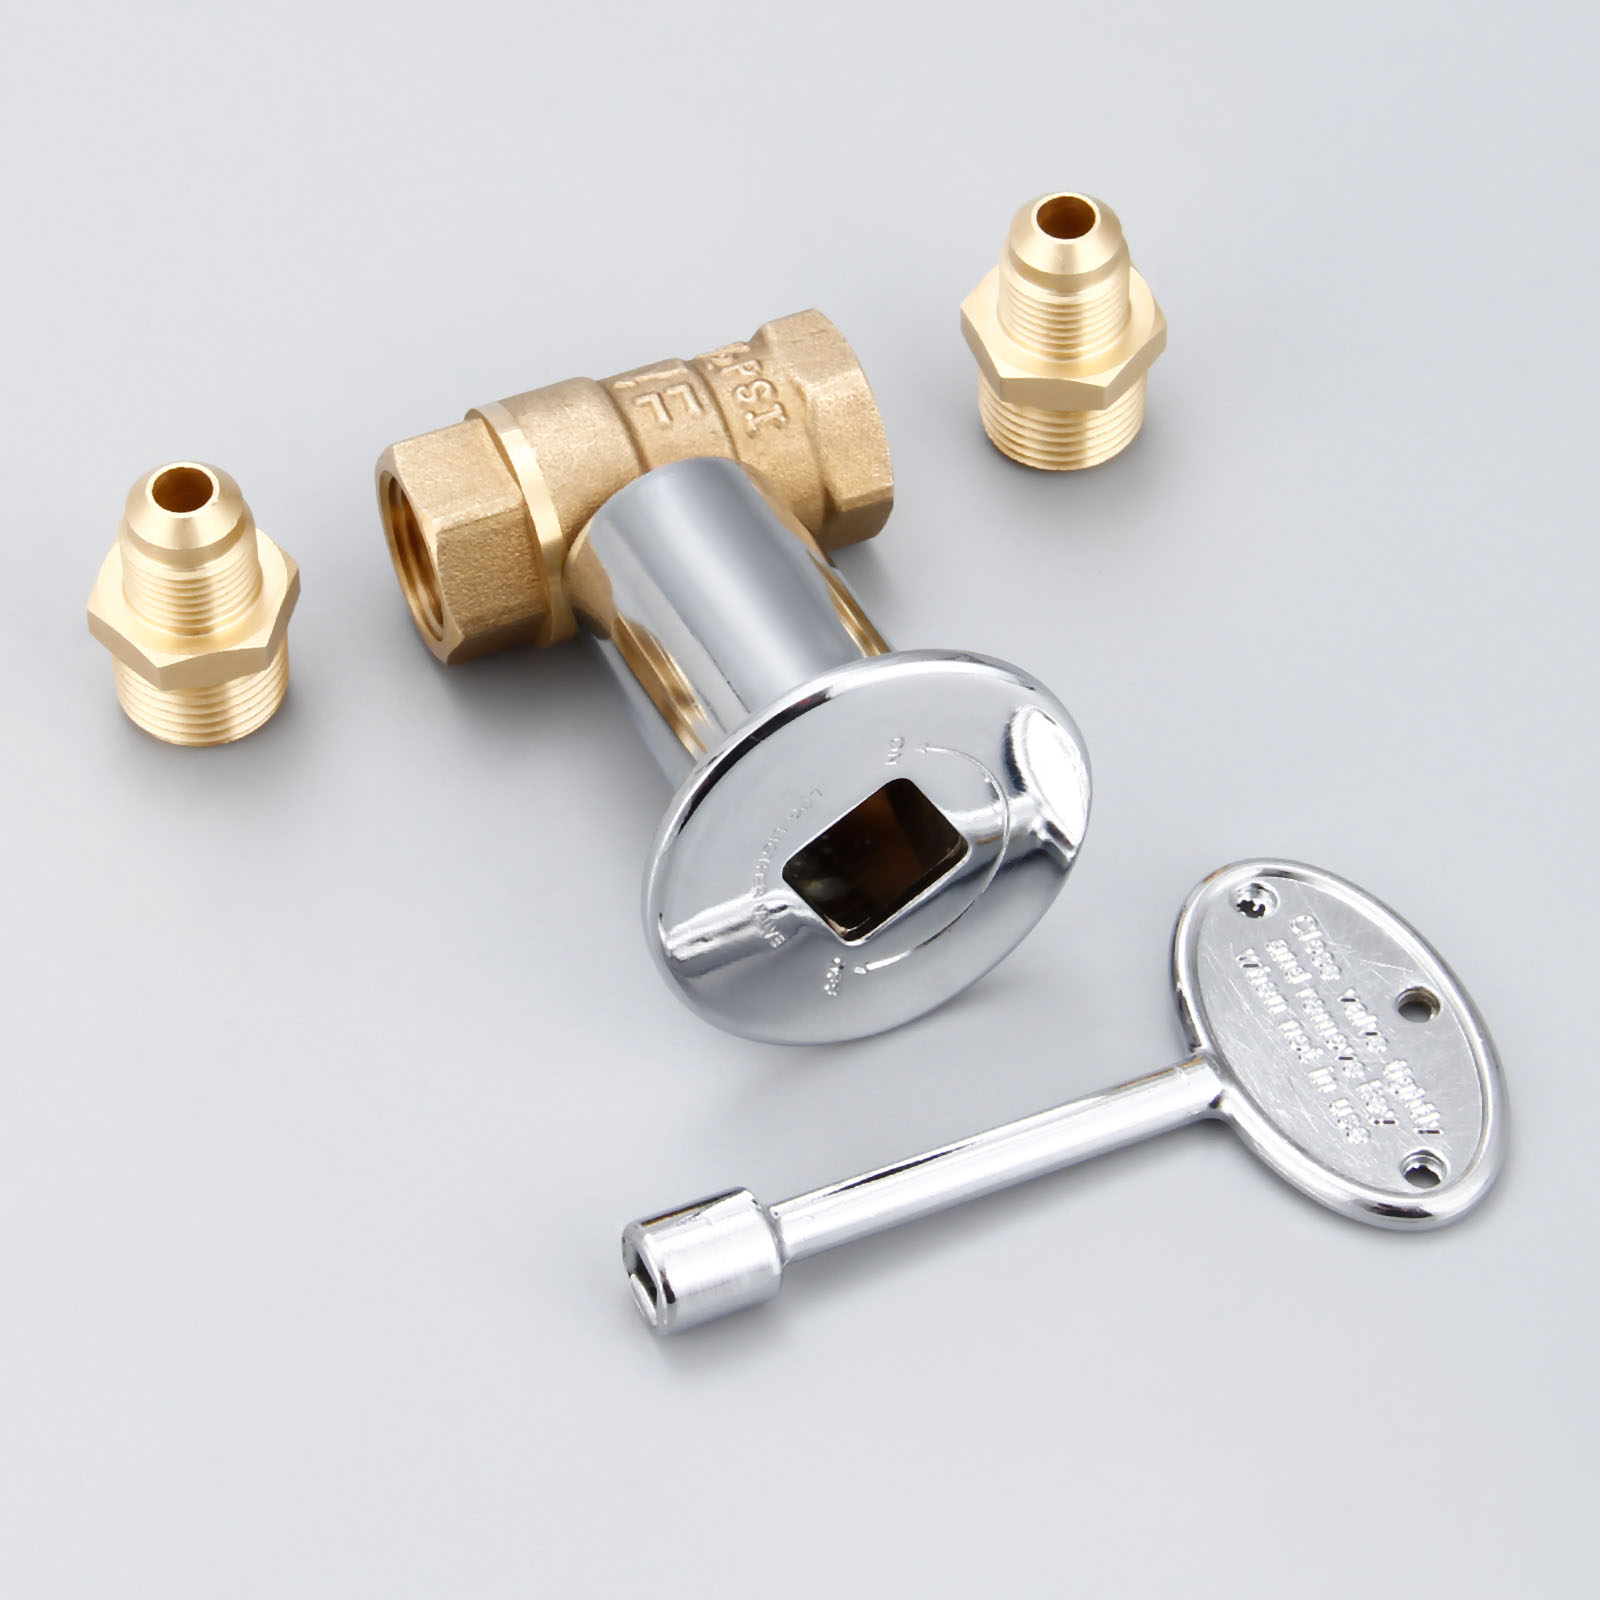 1/2Inch Straight Quarter Turn Shut-Off Valve Kit NG LP Gas Fire Pits Chrome Flange Key Valve 3/8